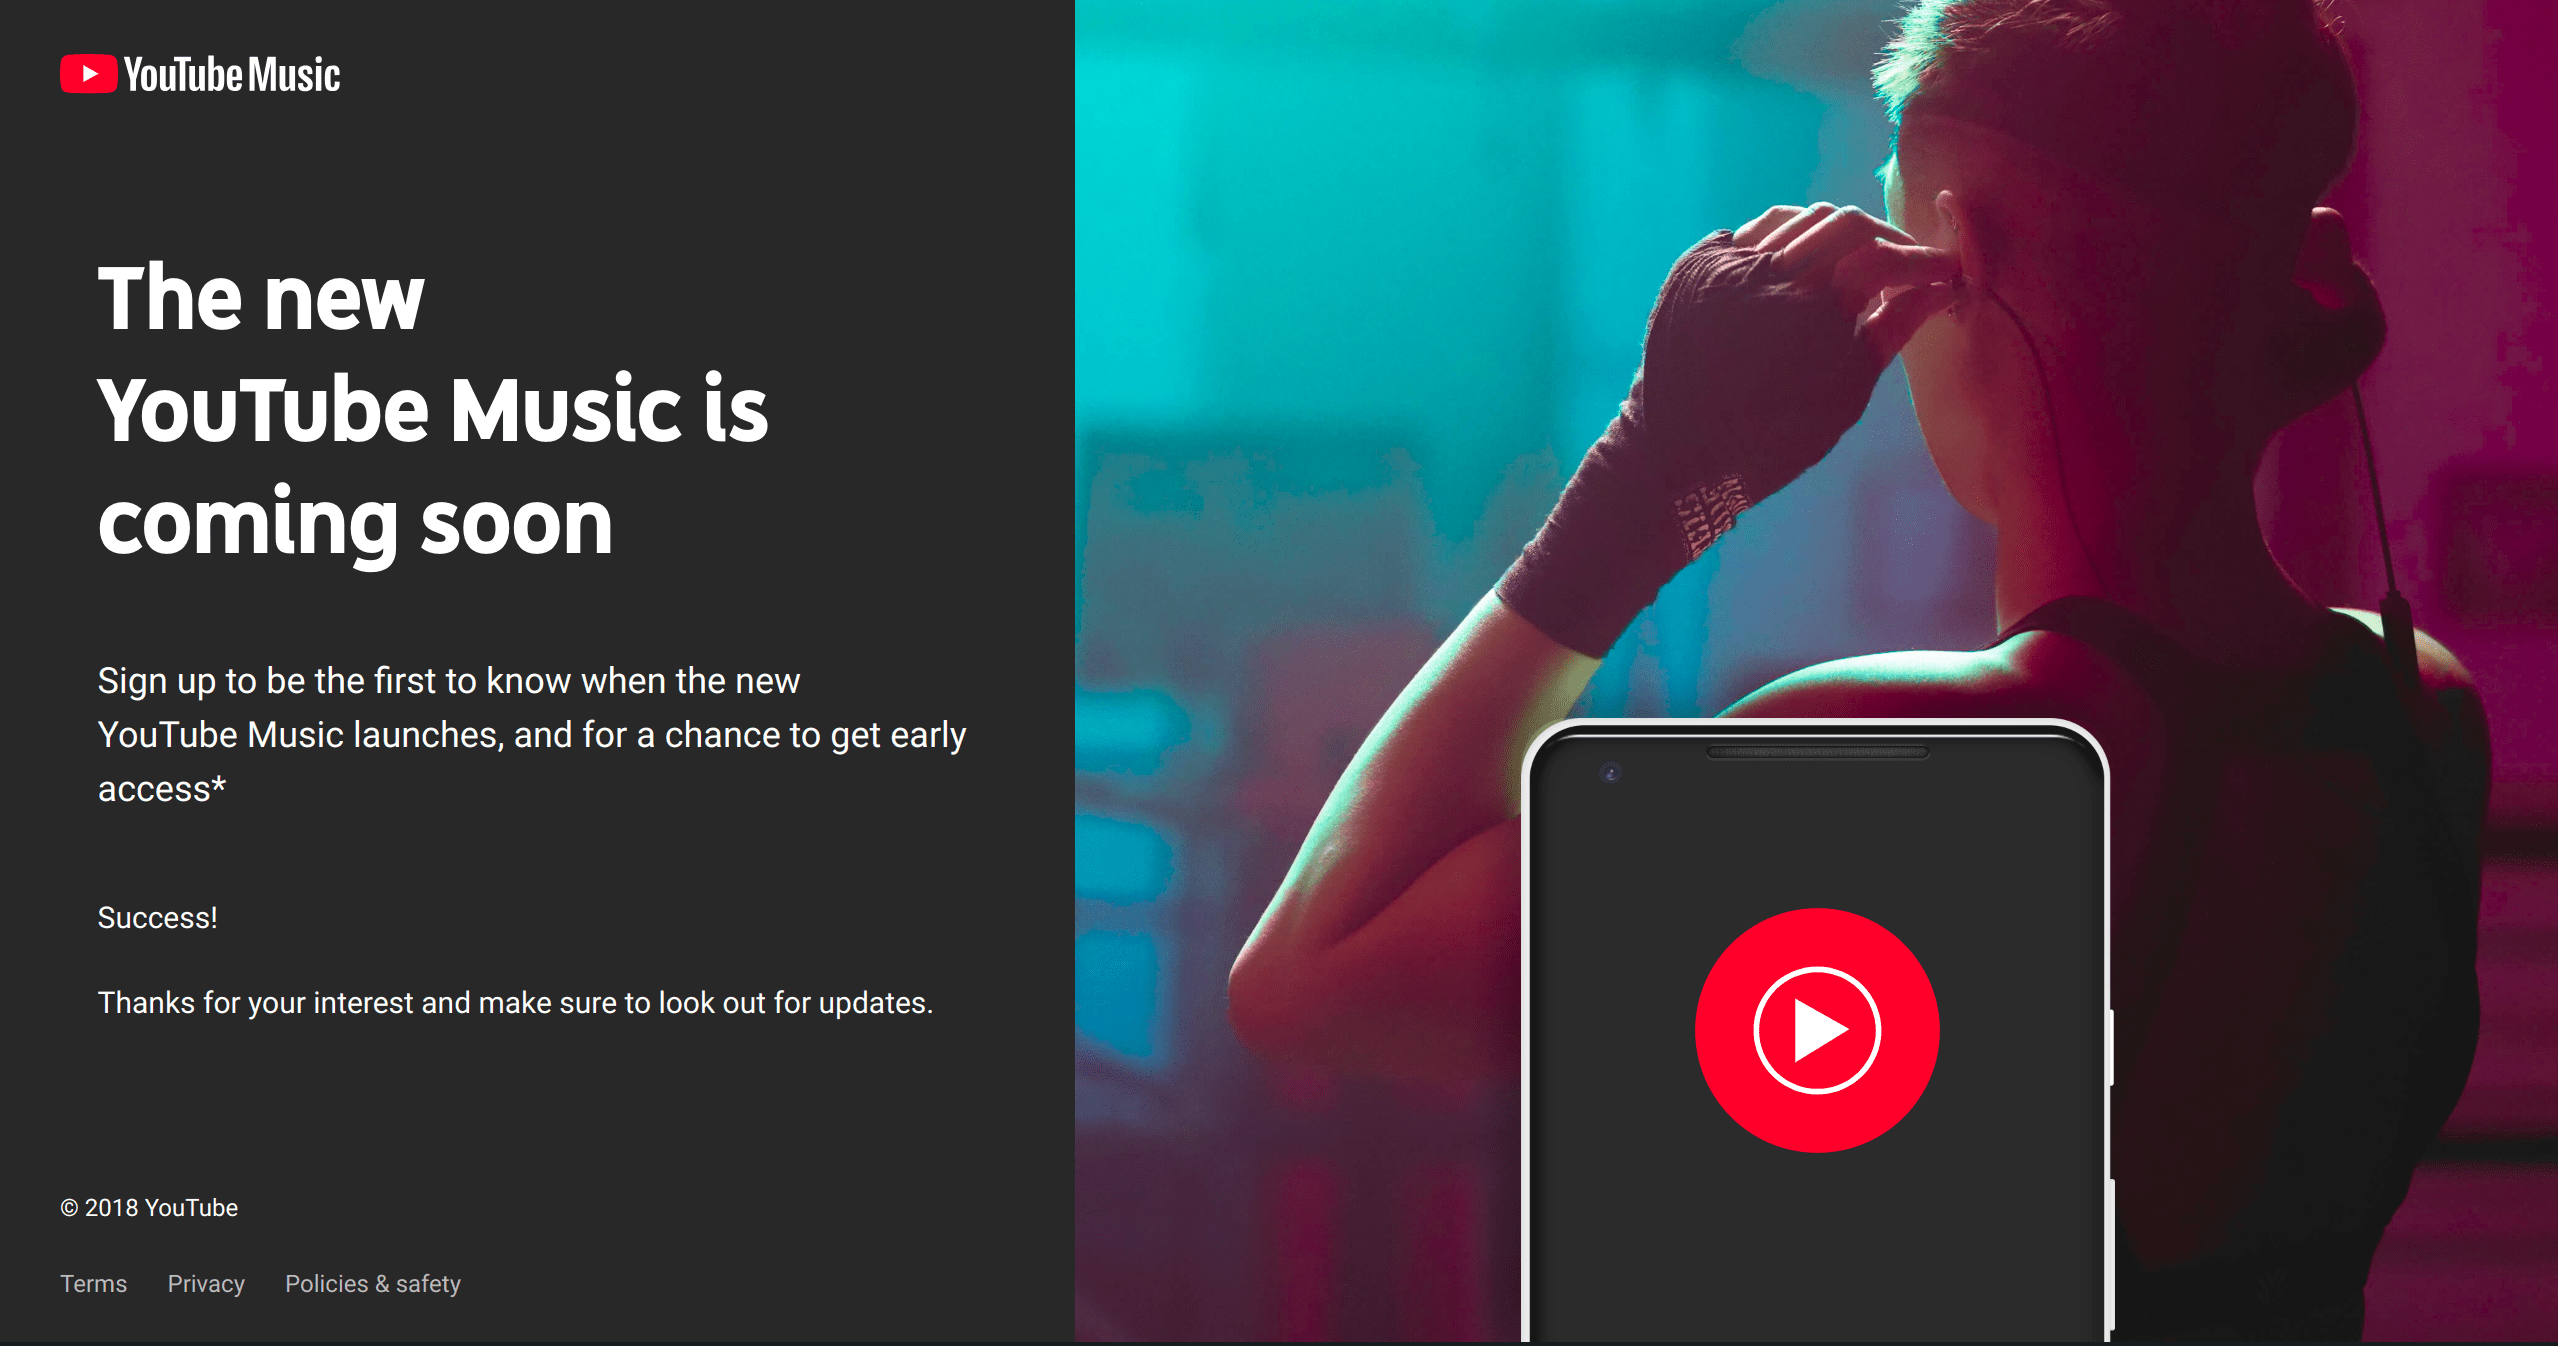 Play Music subscribers can migrate collections, playlists to YouTube Music